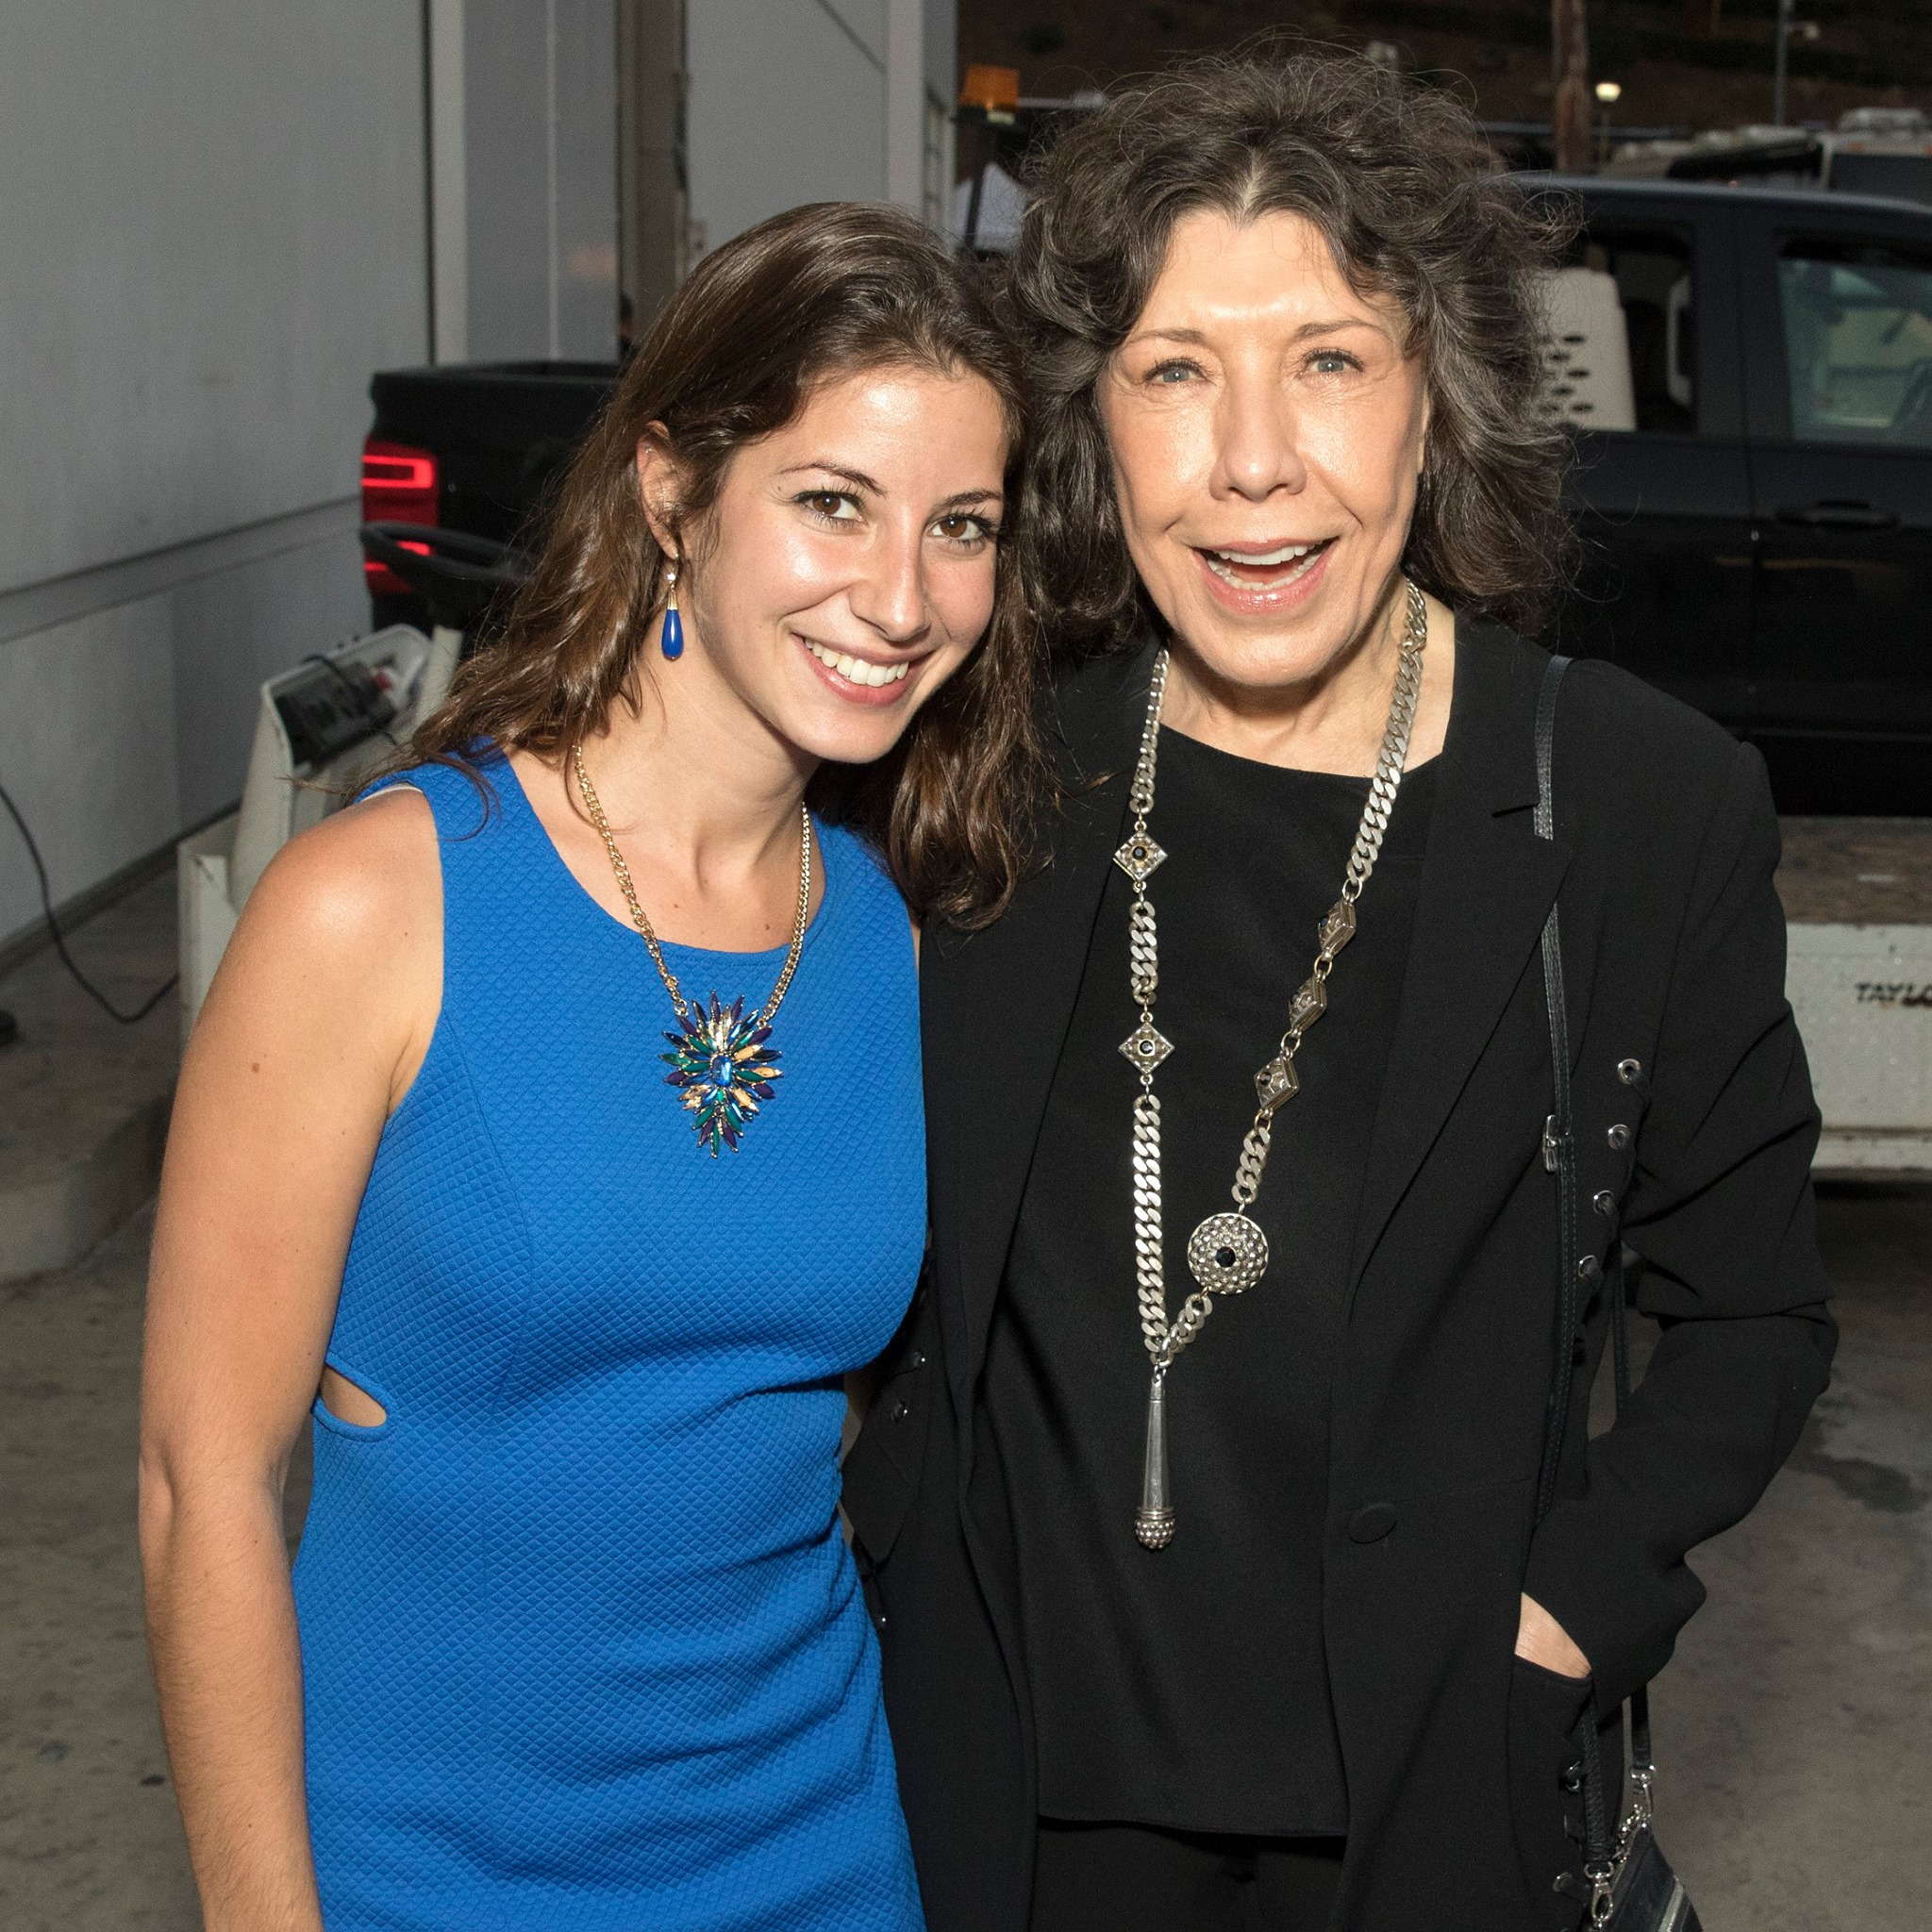 Sawyer with Grace and Frankie star, Lily Tomlin at Dolly Parton's show at the Hollywood Bowl